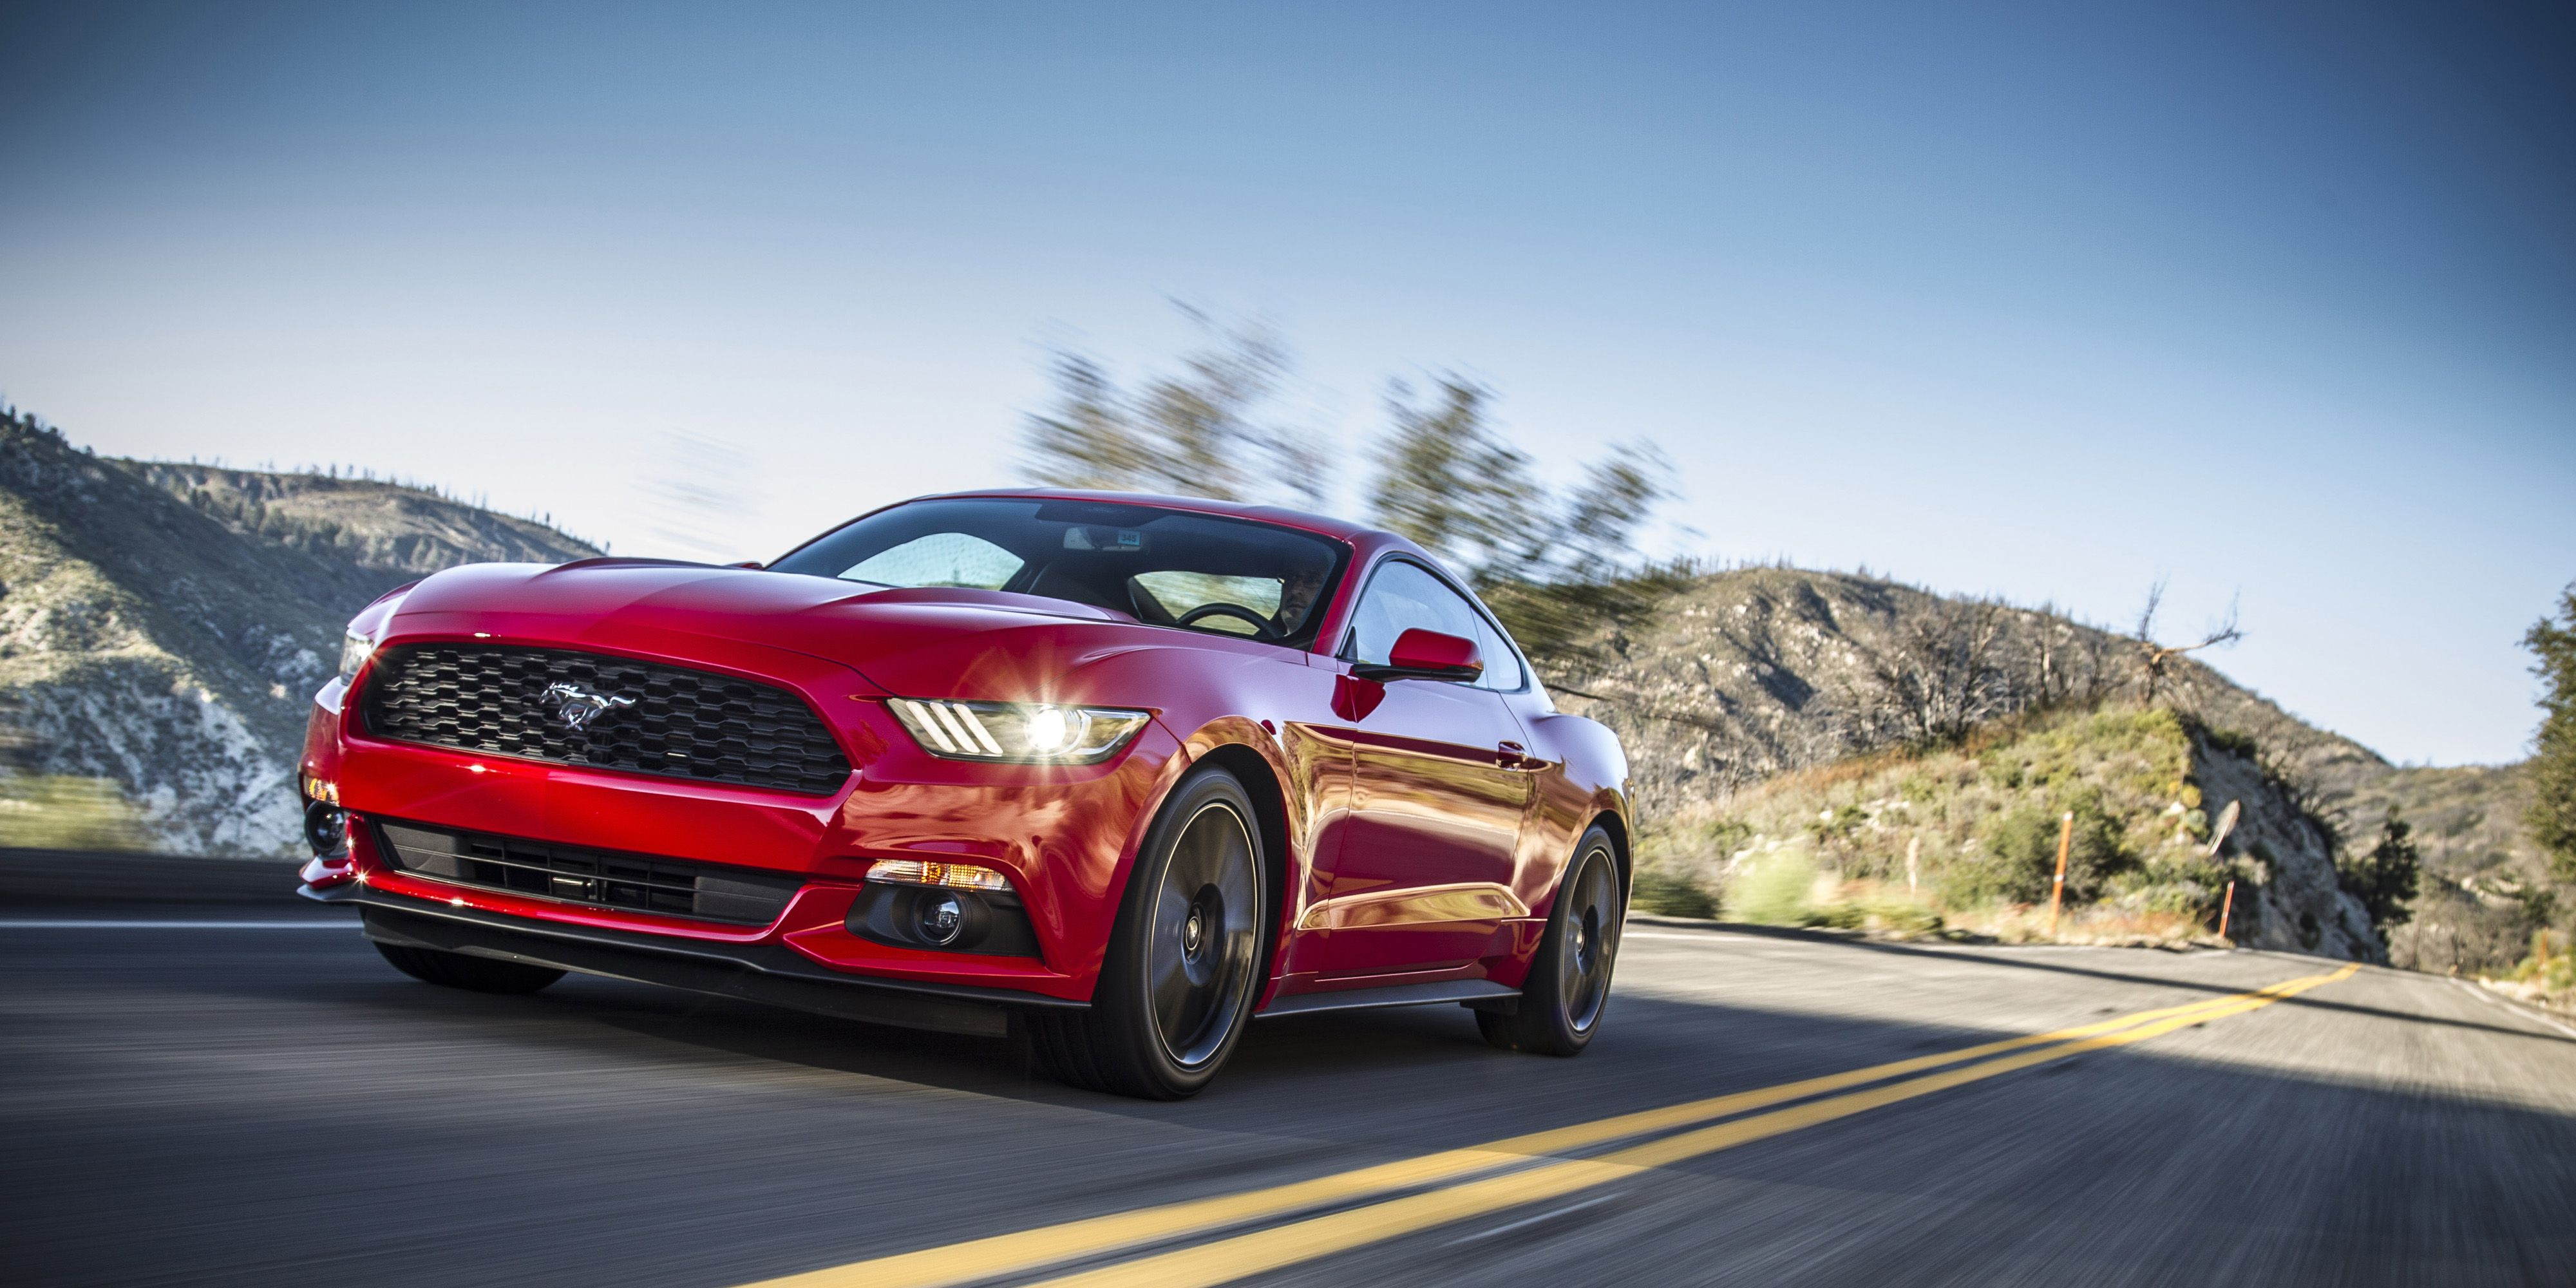 11 Fun-to-Drive Cars That Get 30 MPG or More